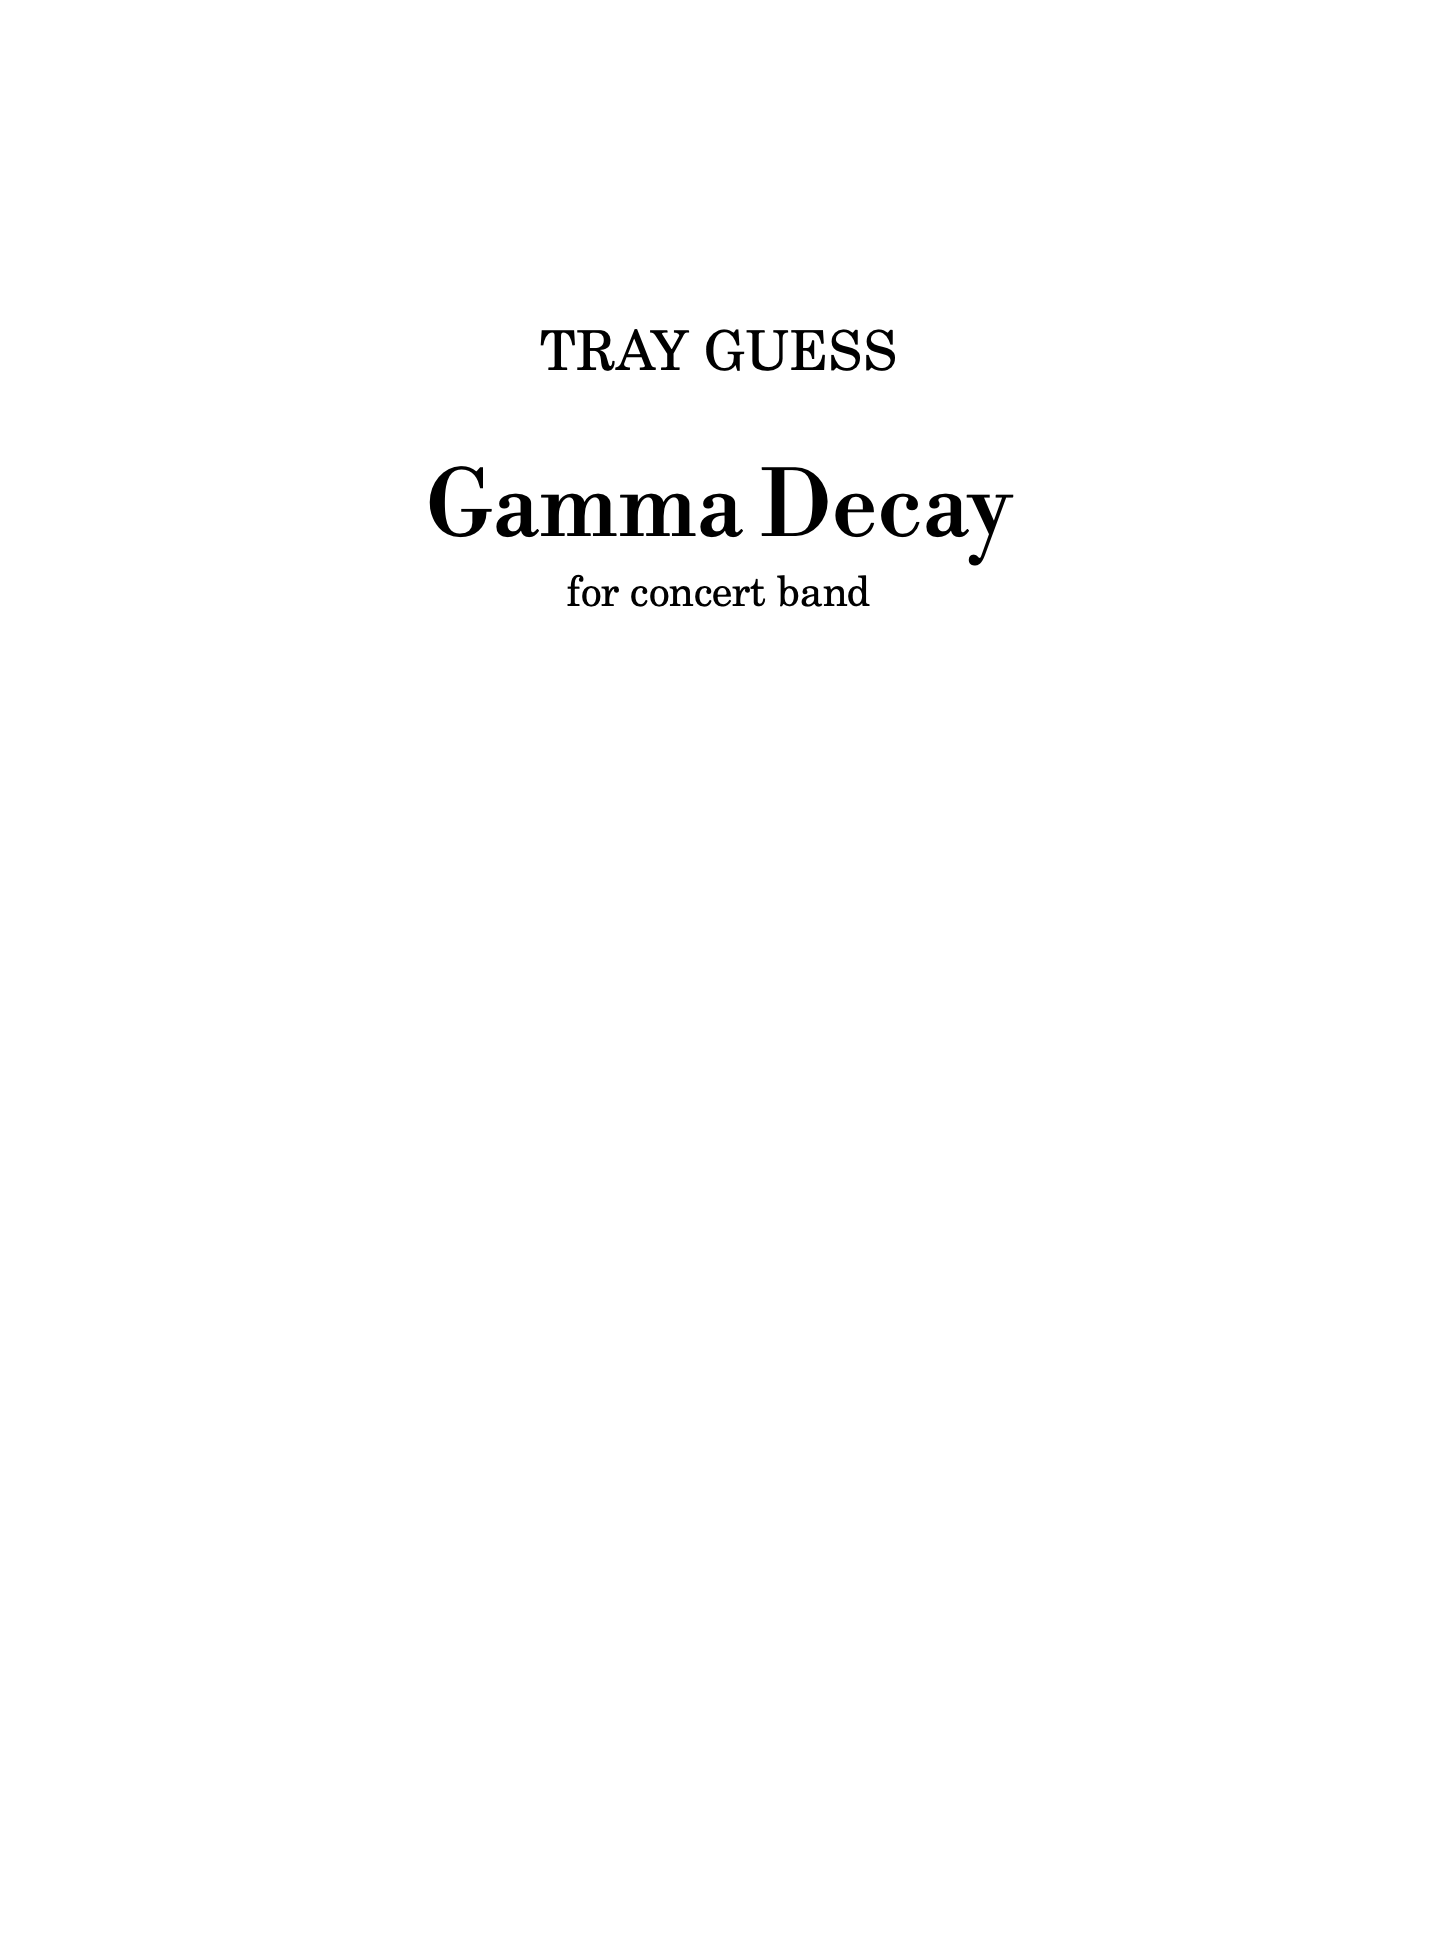 Gamma Decay by Tray Guess